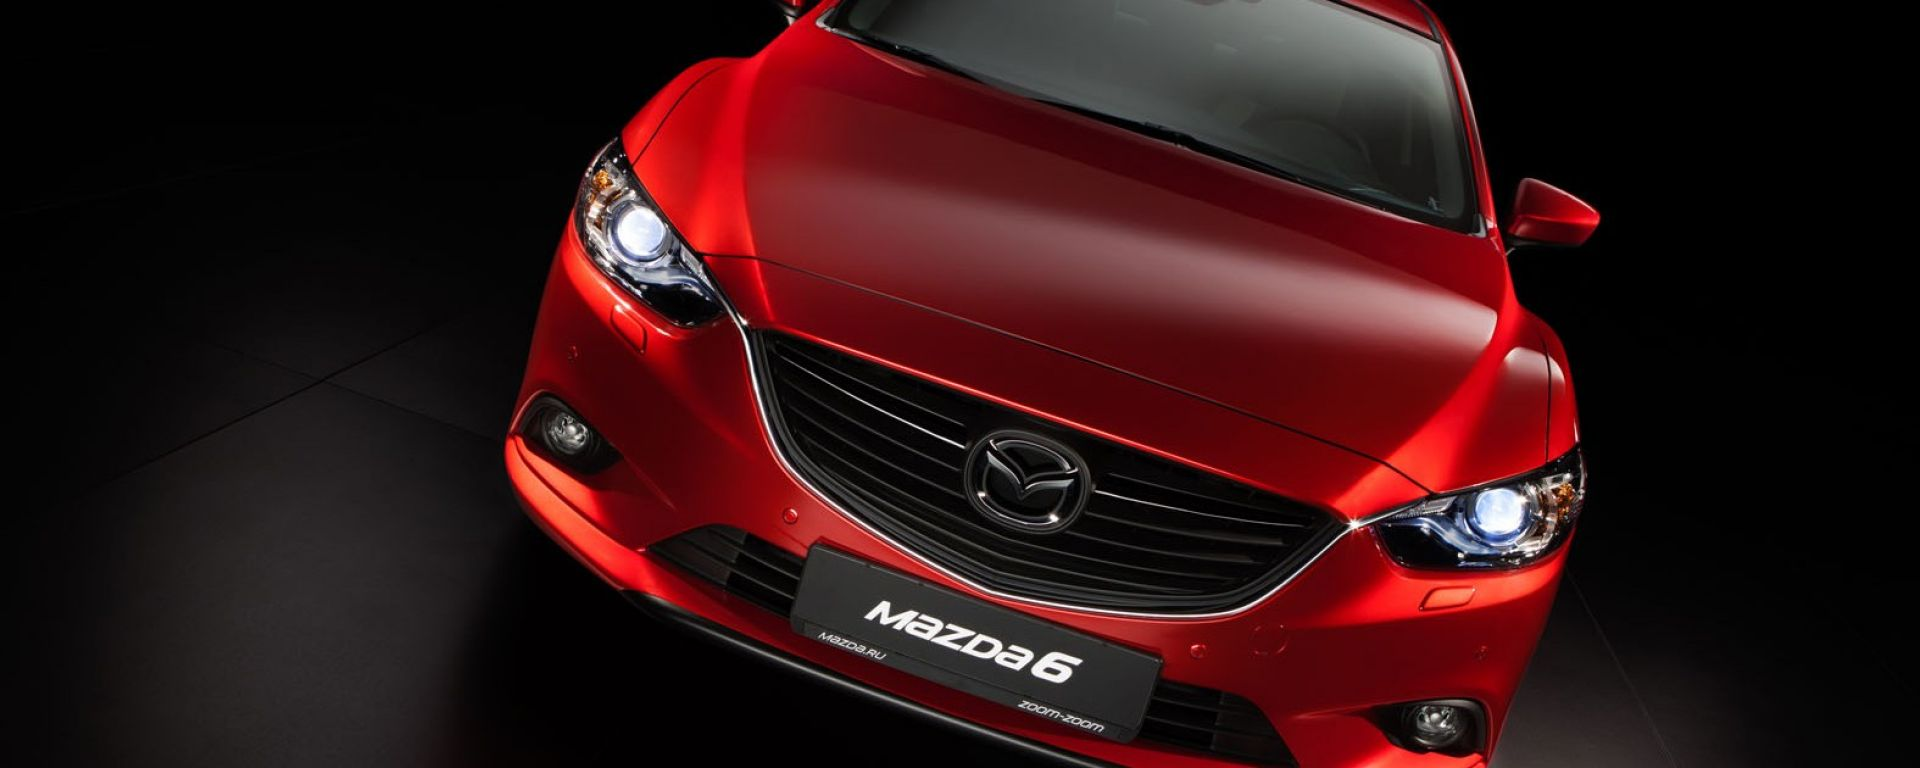 Mazda 6 2013: foto, dati e un video ufficiale